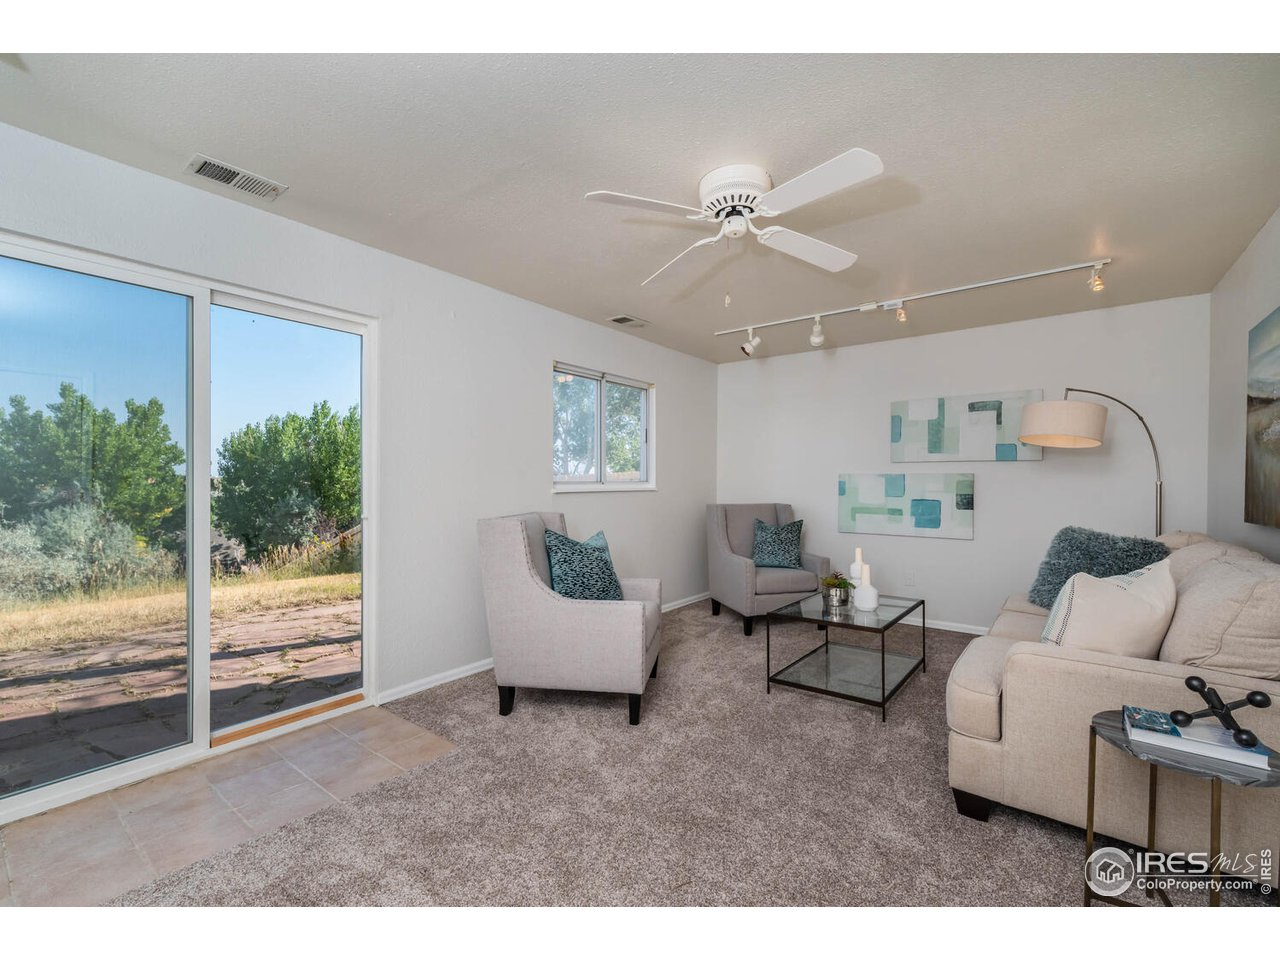 Family room with sliding glass door to back yard and flagstone patio